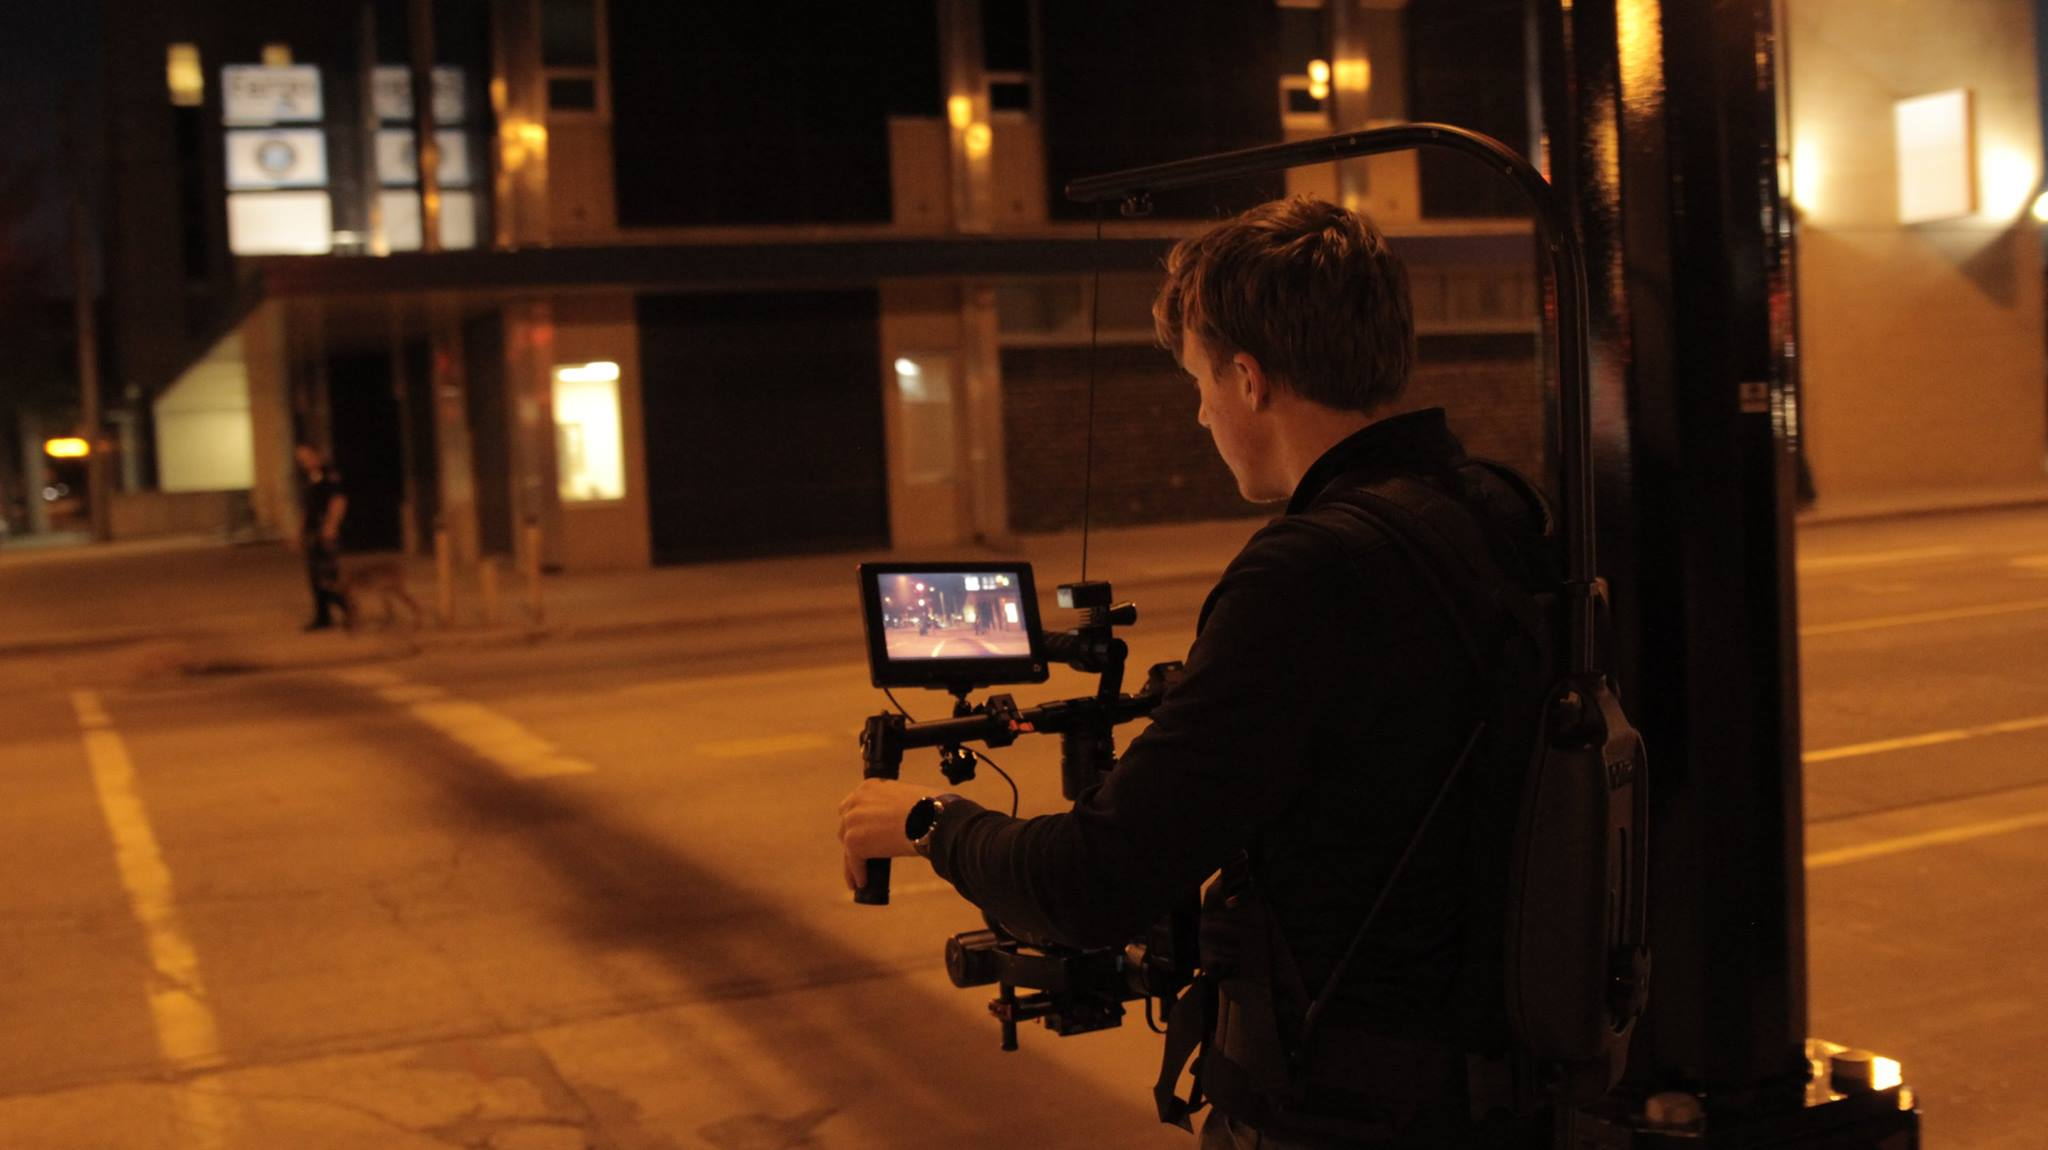 5 Key Lessons for Successfully Pursuing your Dream as a Filmmaker